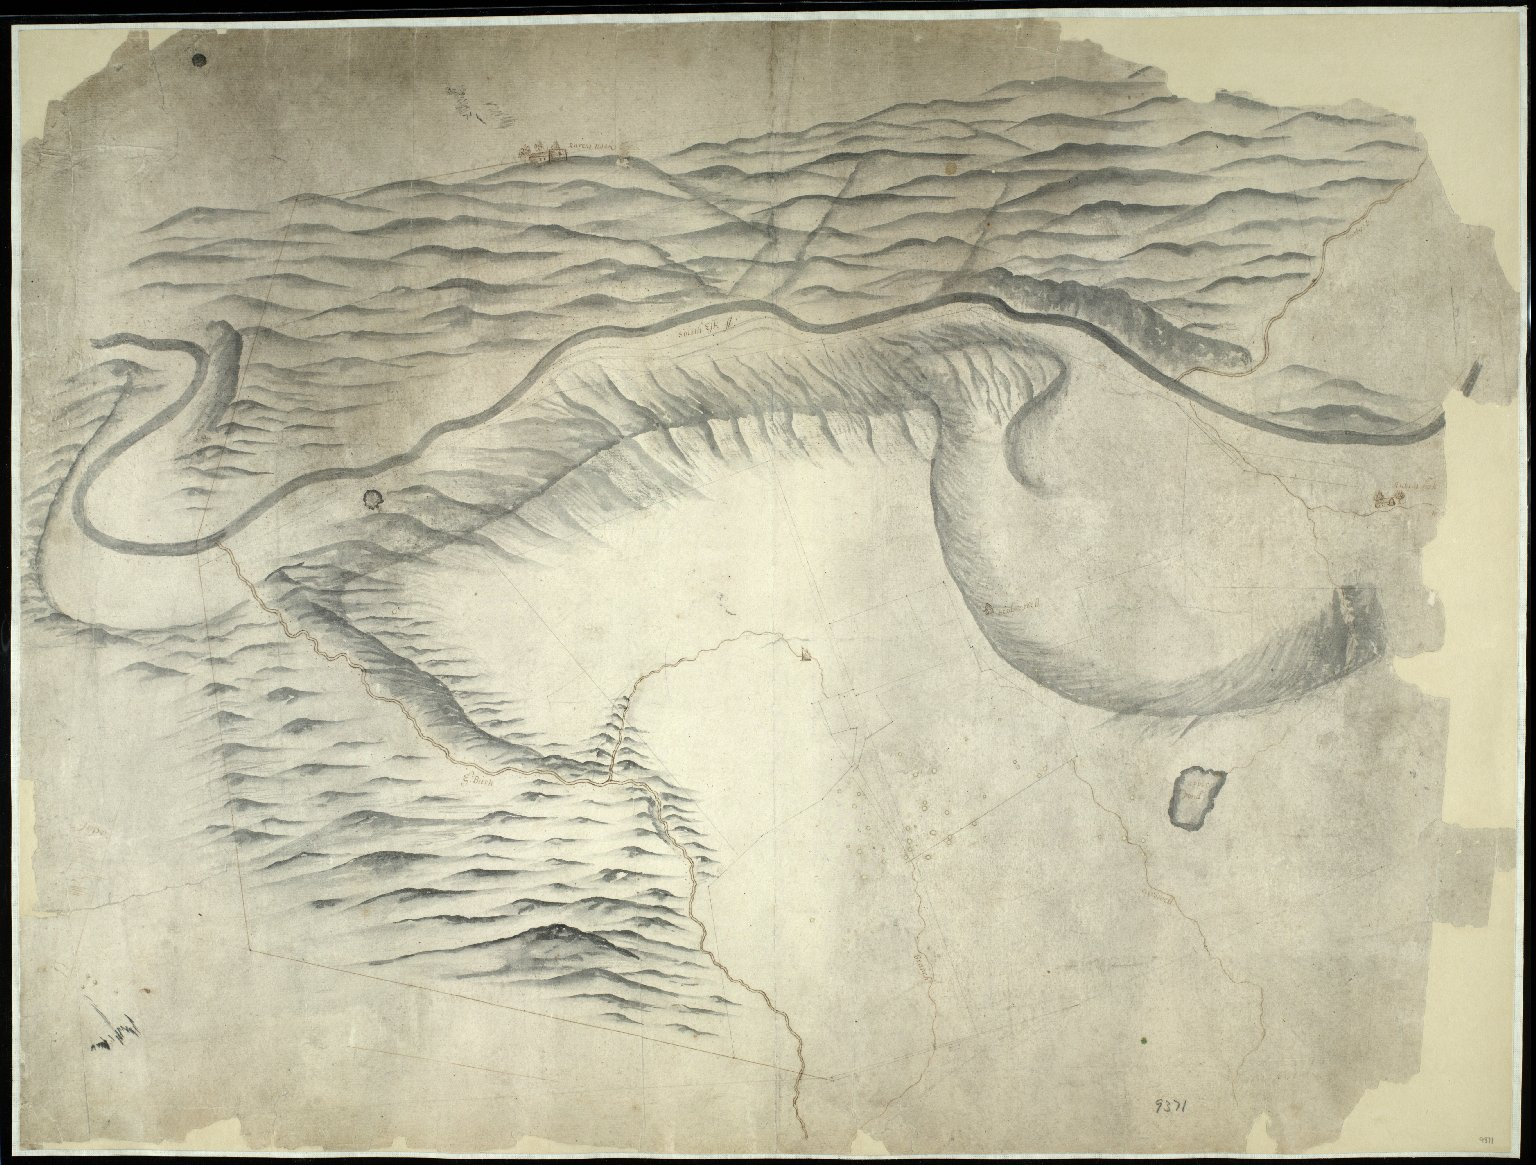 [Sketch map of the water catchment area around Newbigging House (Old Penicuik House), probably about 1687] [1 of 1]